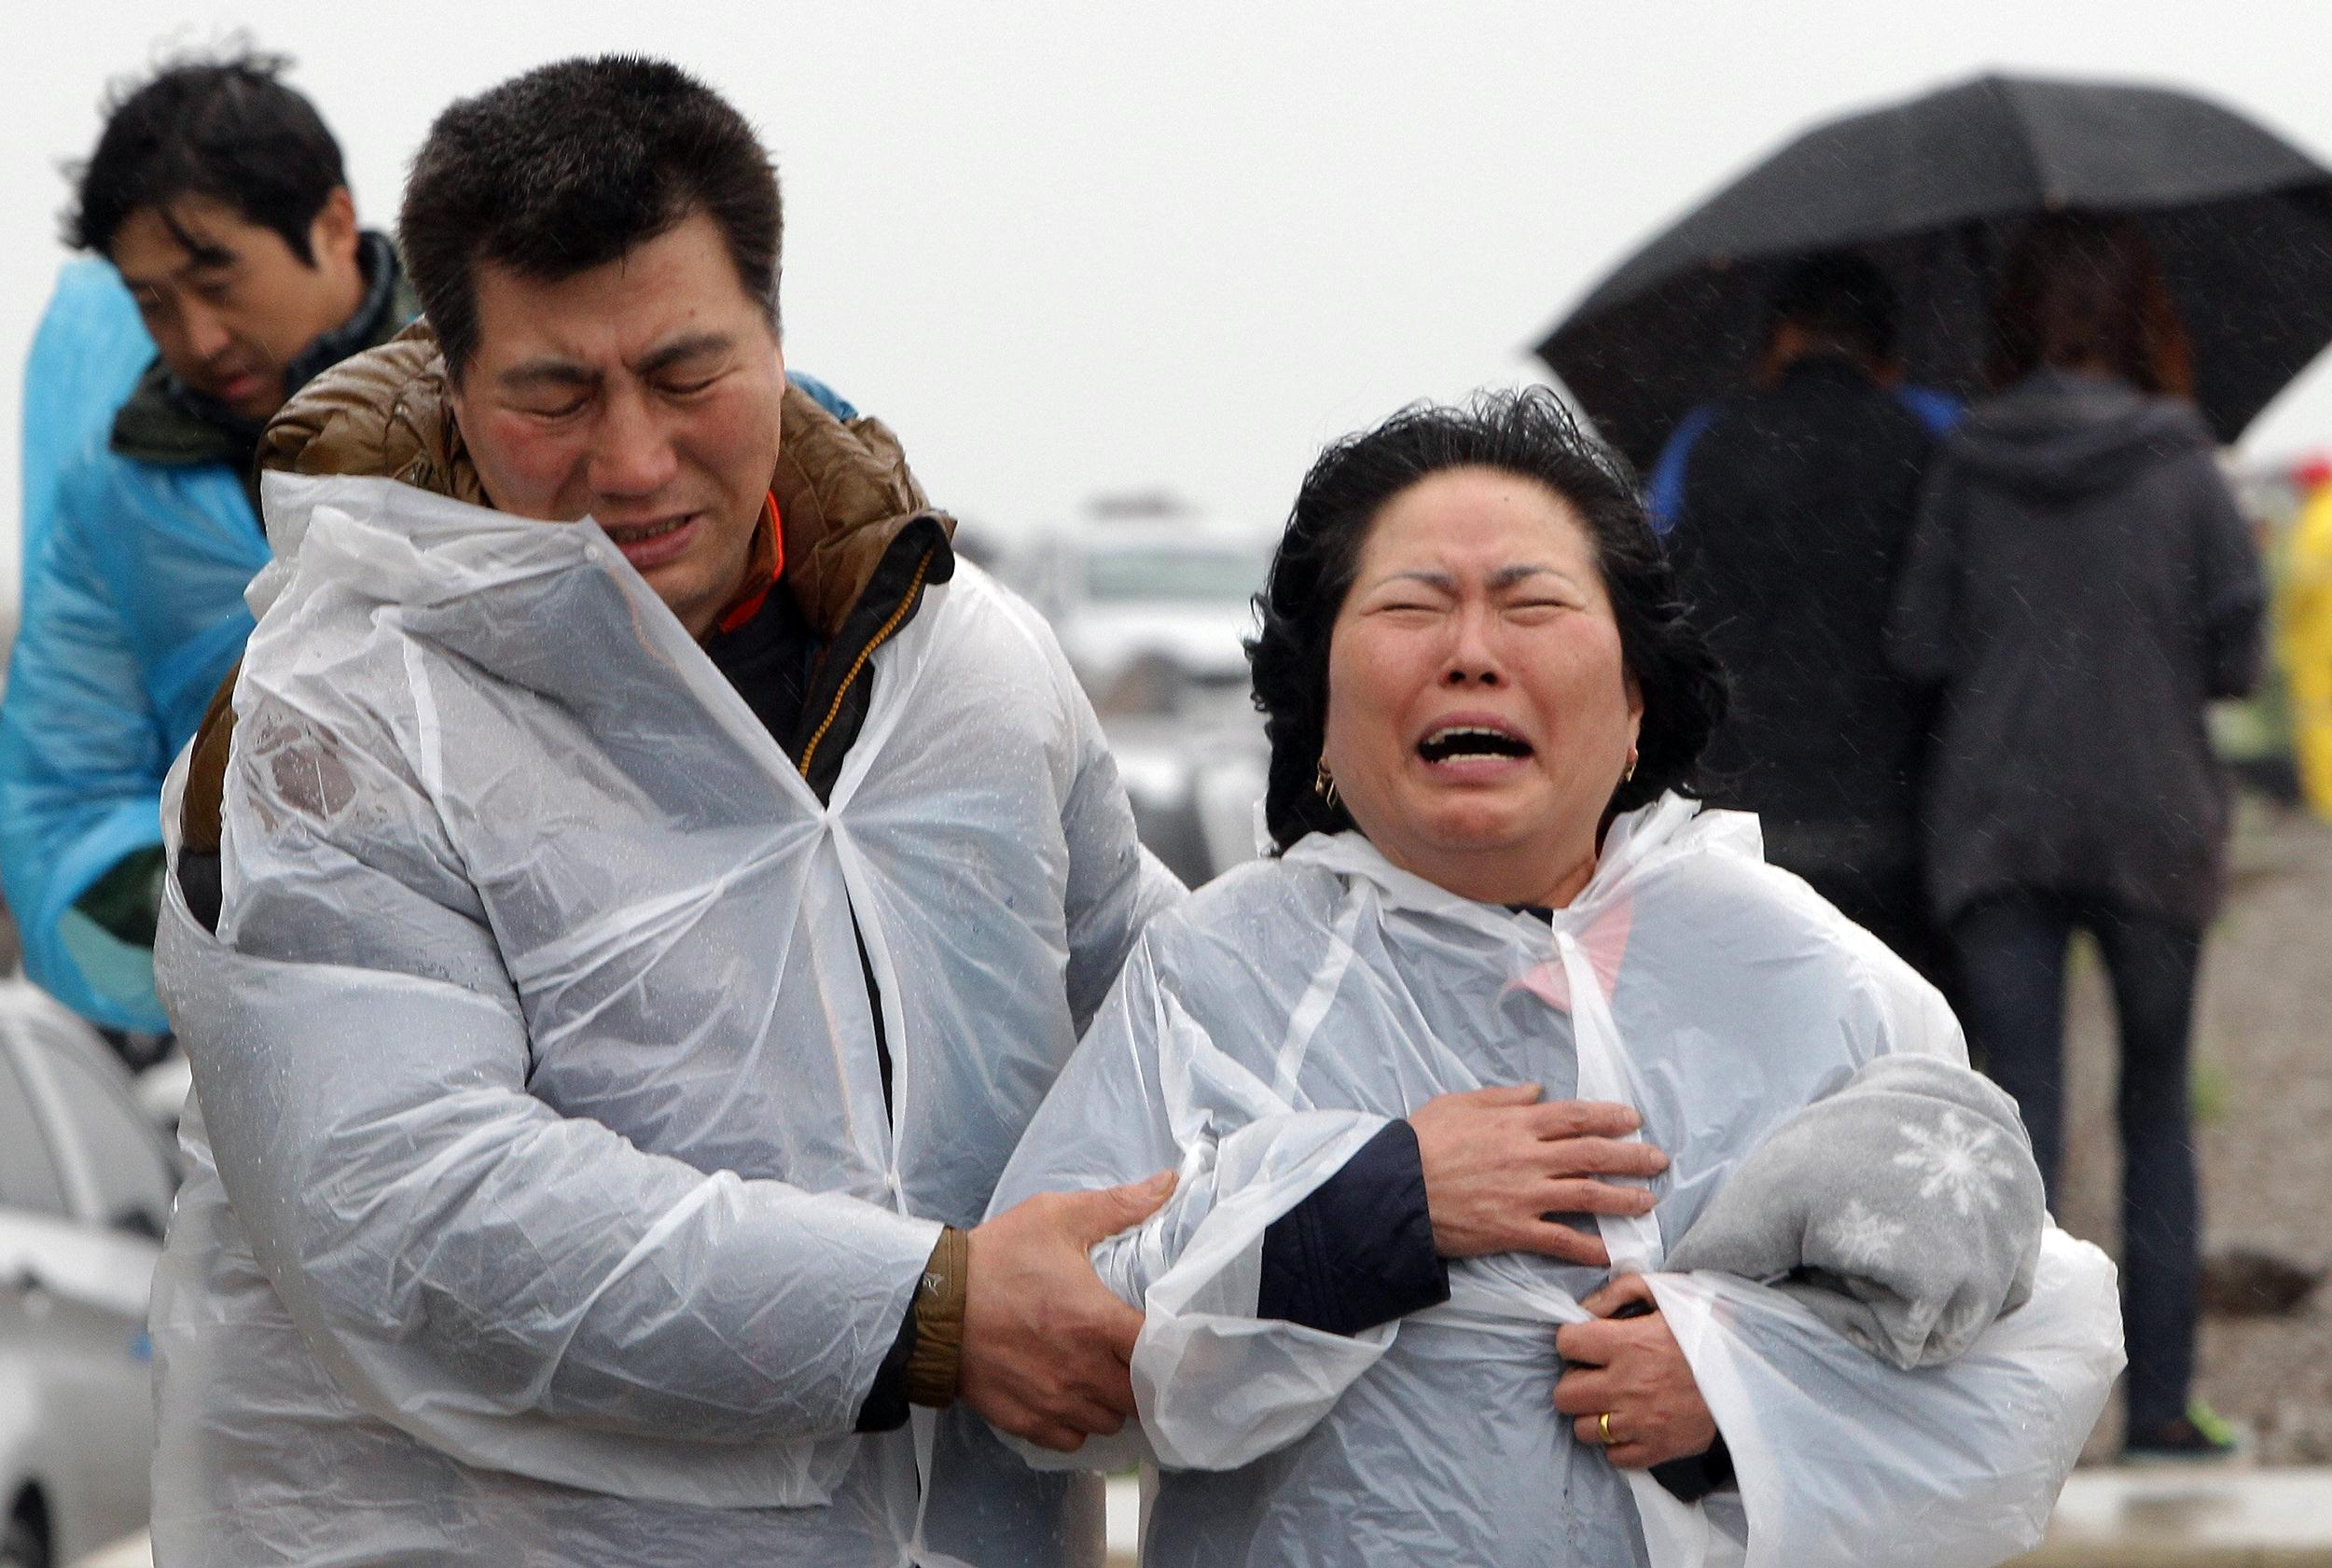 Image: A relative weeps as she waits for missing passengers of a sunken ferry